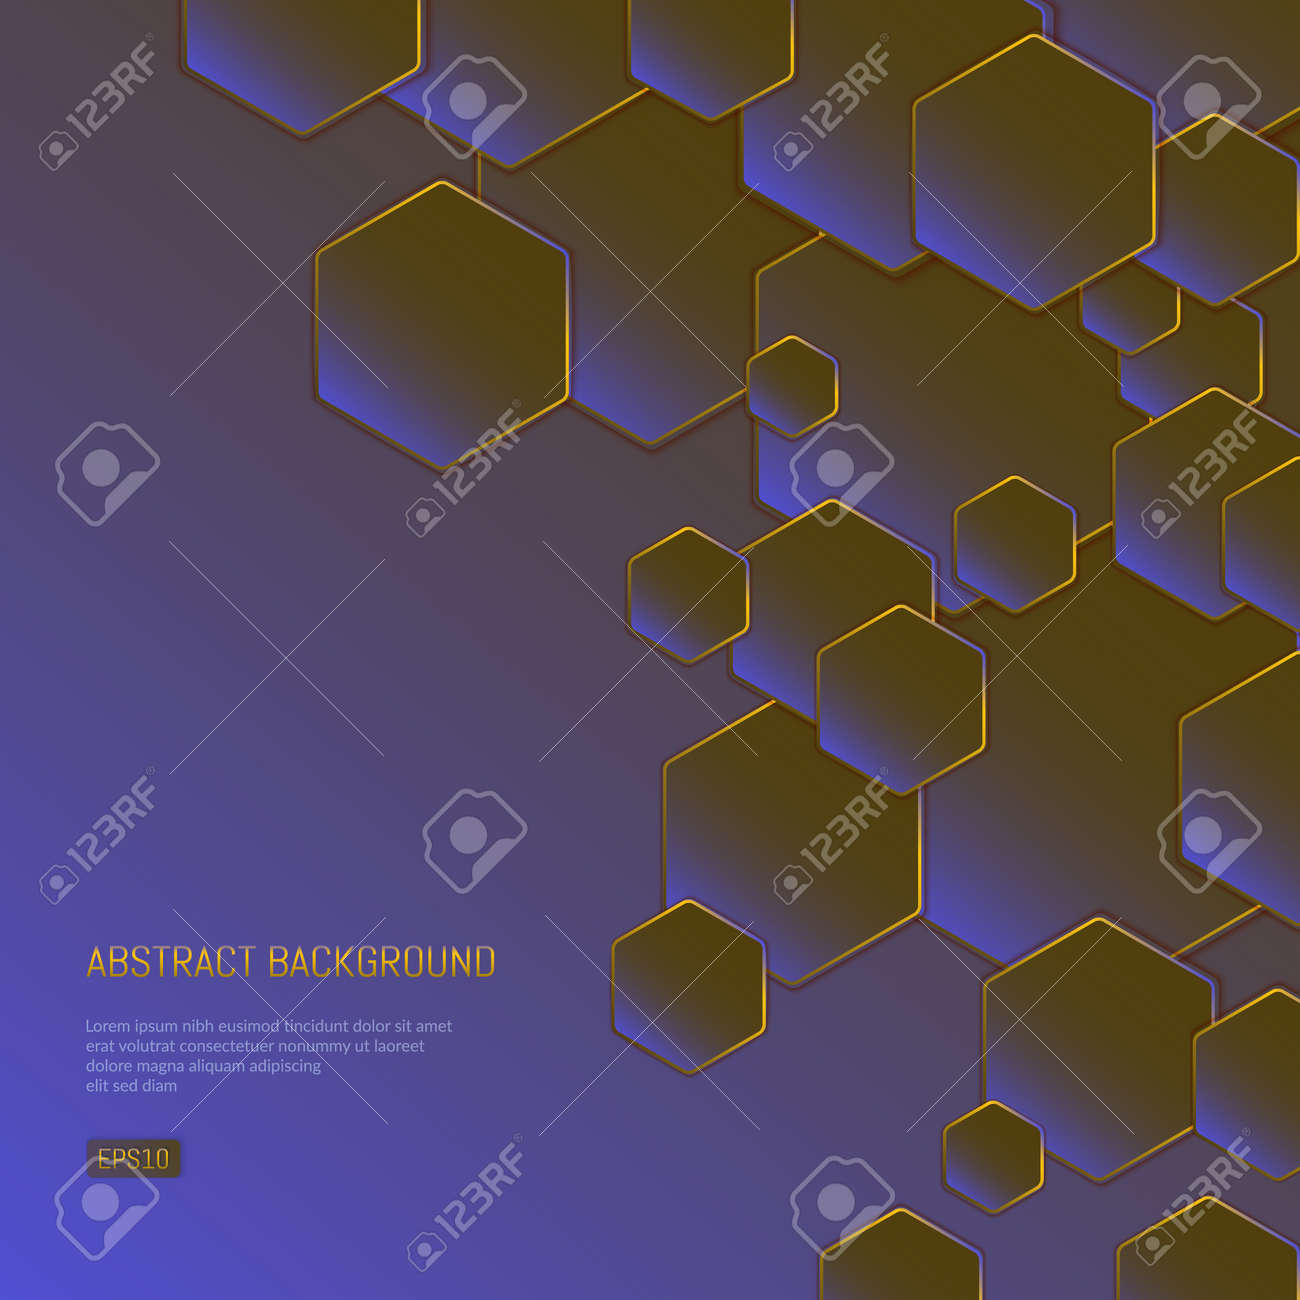 Abstract background for presentations on business and science